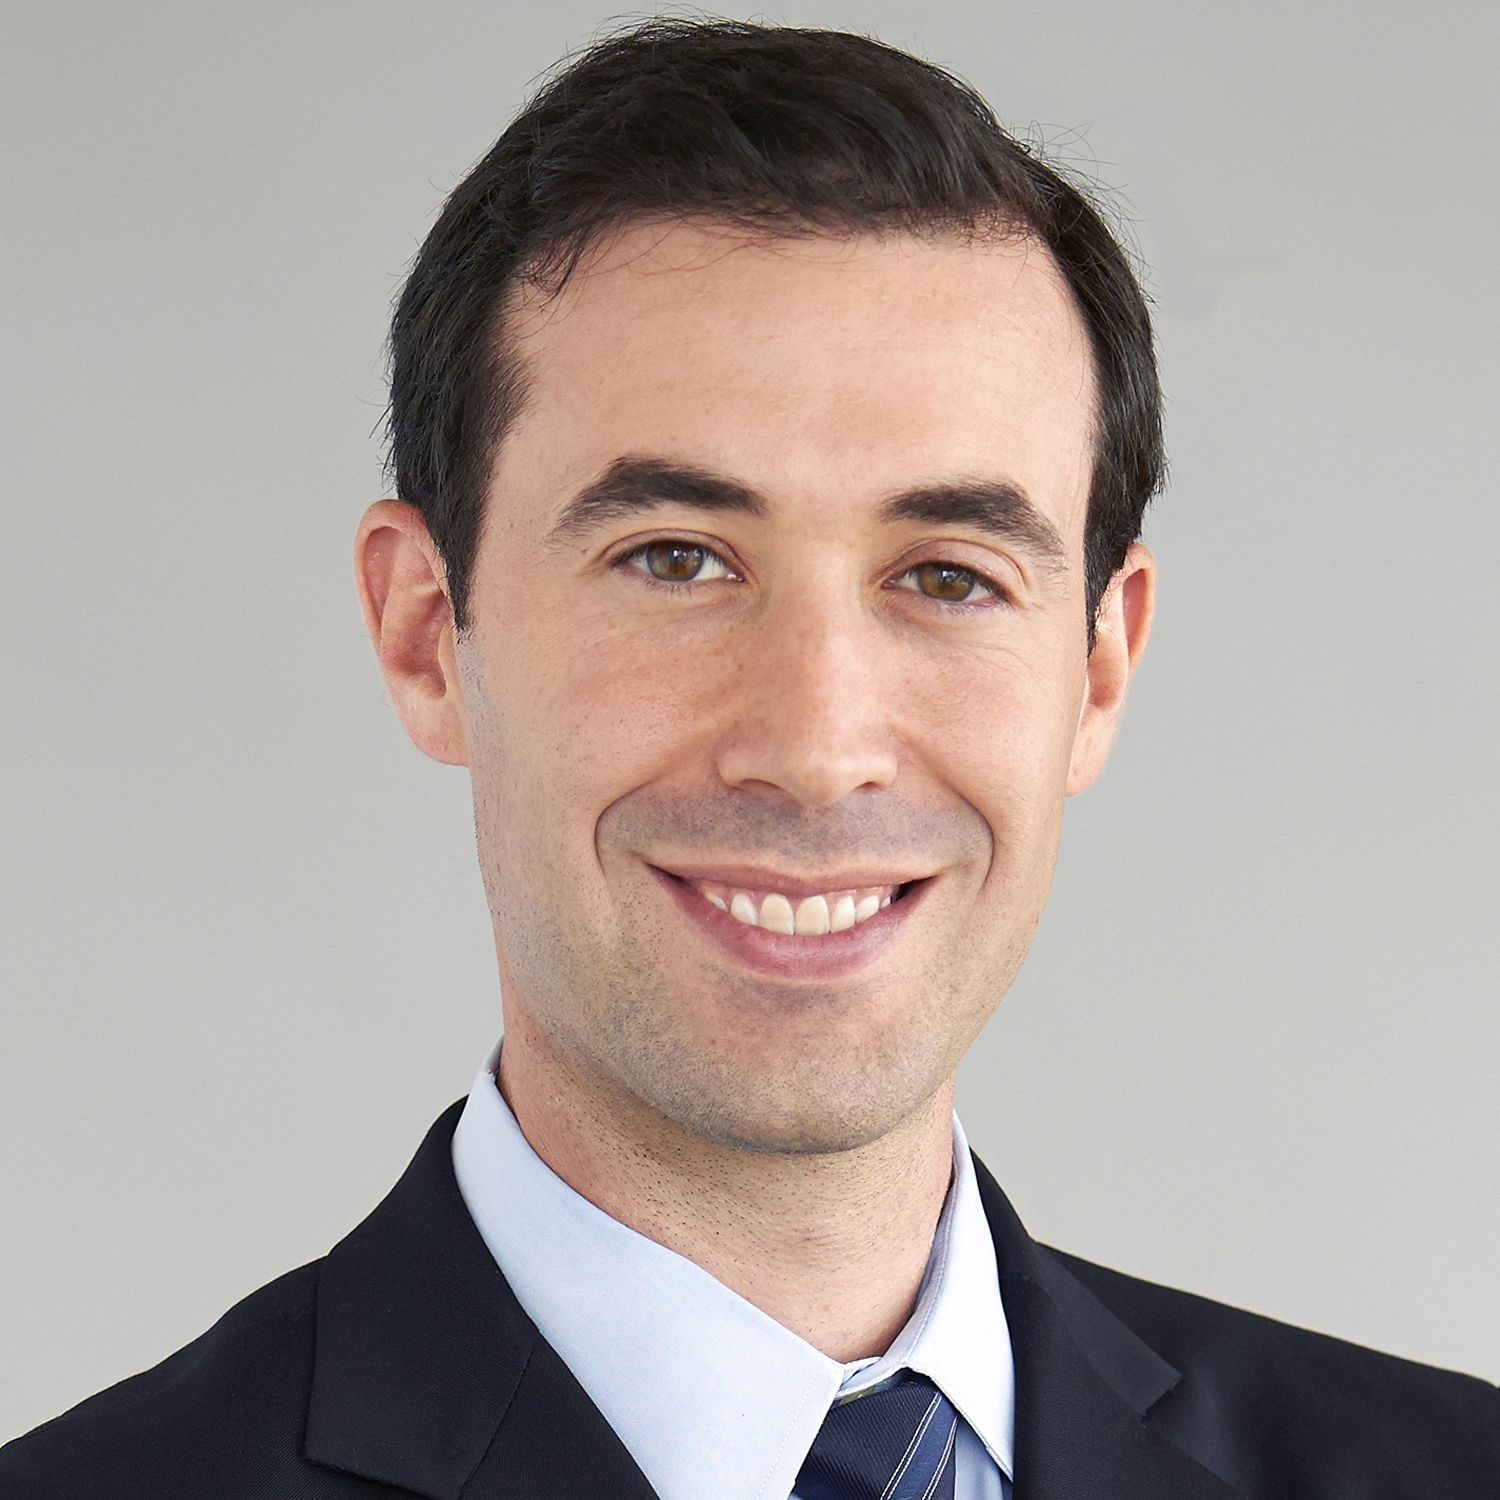 Matthew Lilling is the Portfolio Manager and Managing Director at ClearBridge Investments